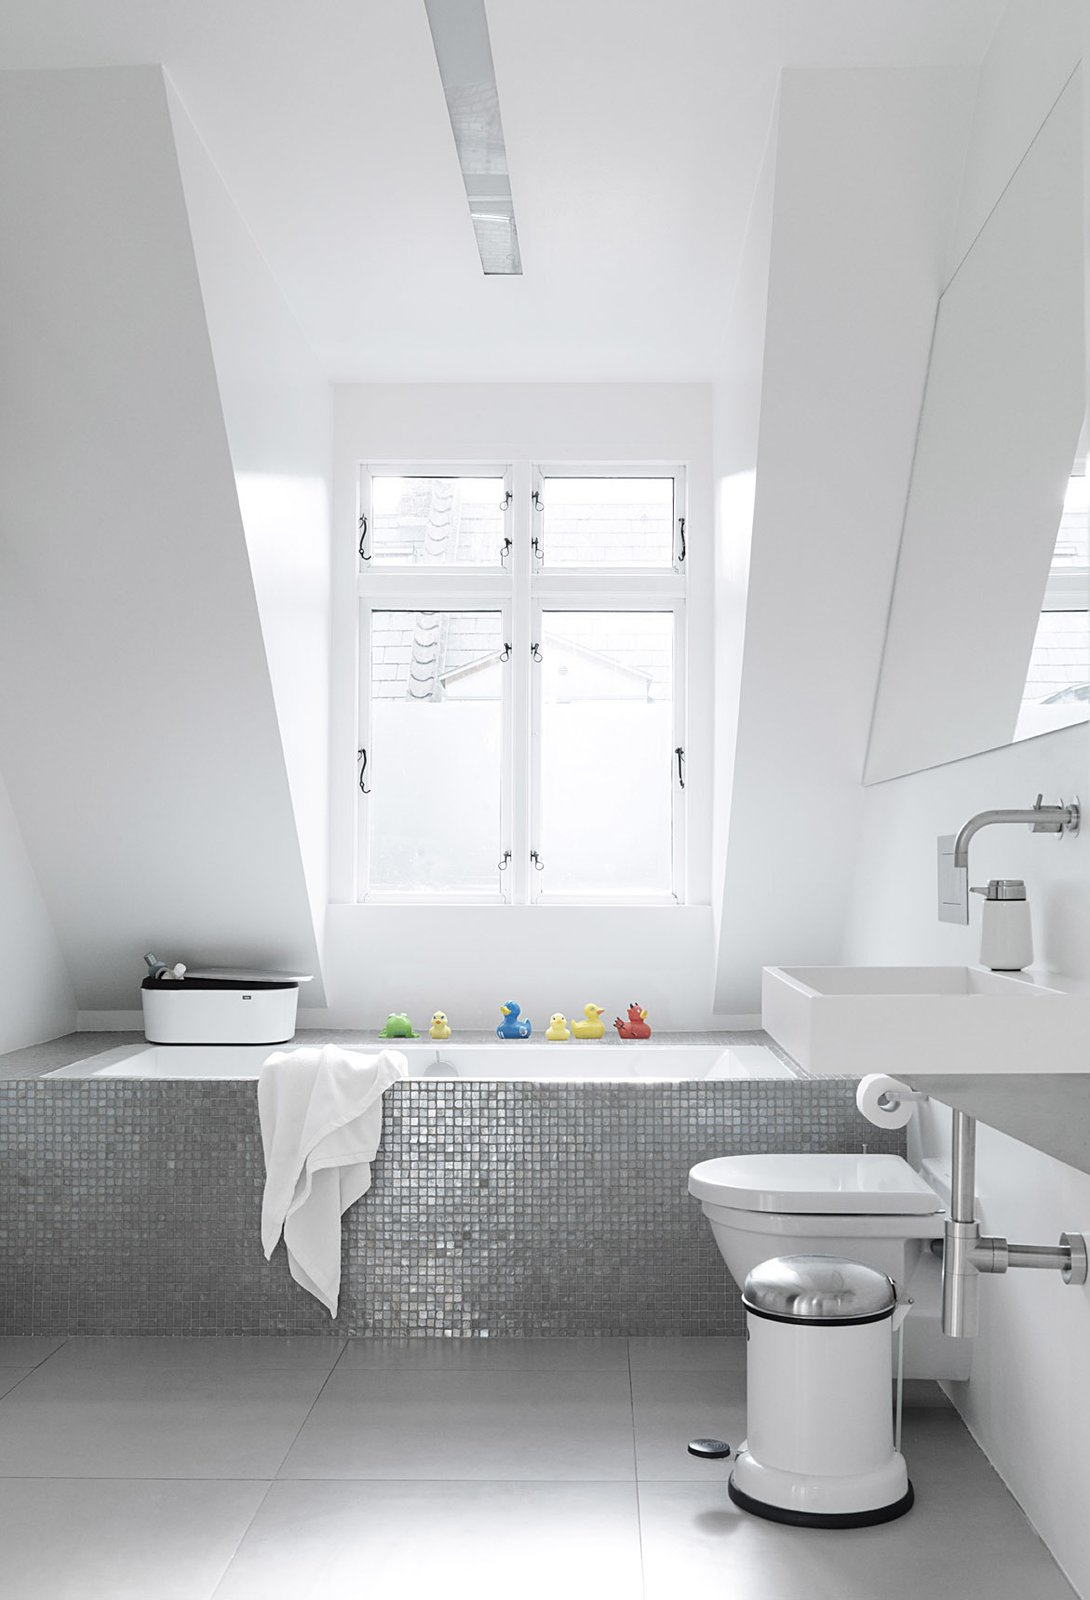 Sofie and Frank built a box around an ordinary glass fiber shell bathtub, then covered it in a mosaic of shower tiles. Natural light from a large dormer window gives the tiles an almost iridescent glow. The toilet is Duravit. Black, White, and Gray All Over: Monochromatic Copenhagen Townhouse - Photo 10 of 12